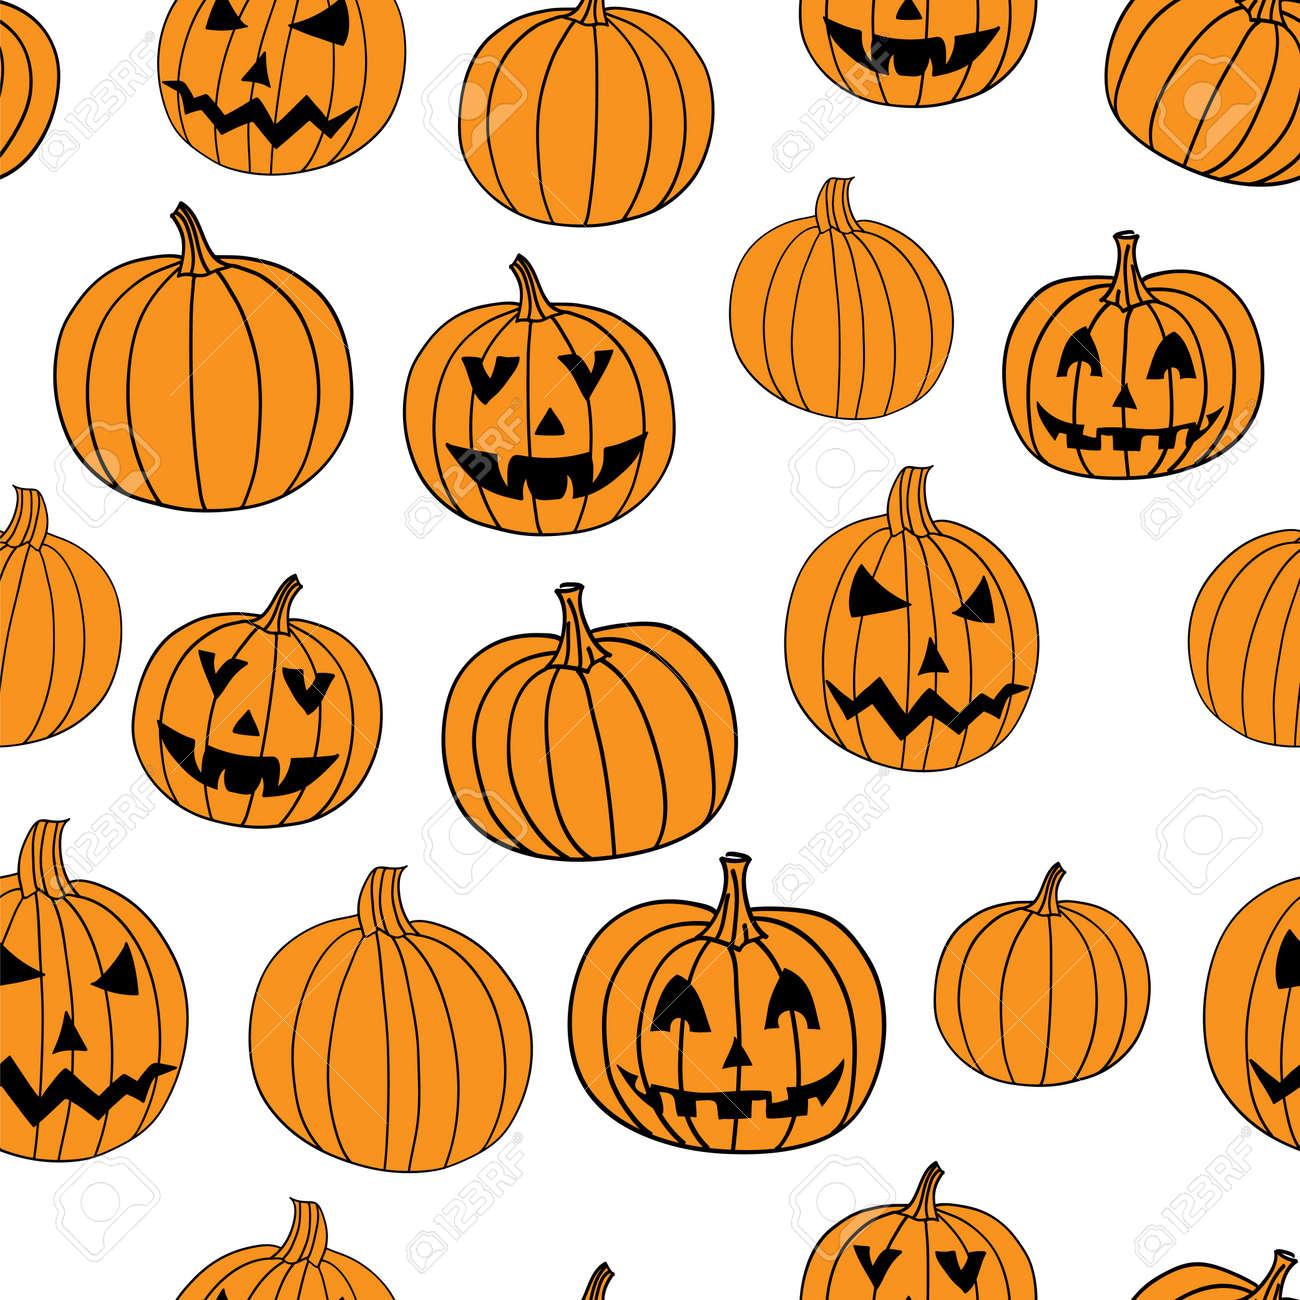 Halloween Vector Textile Print Seamless Pattern With Jack O Lantern Royalty Free Cliparts Vectors And Stock Illustration Image 63463713